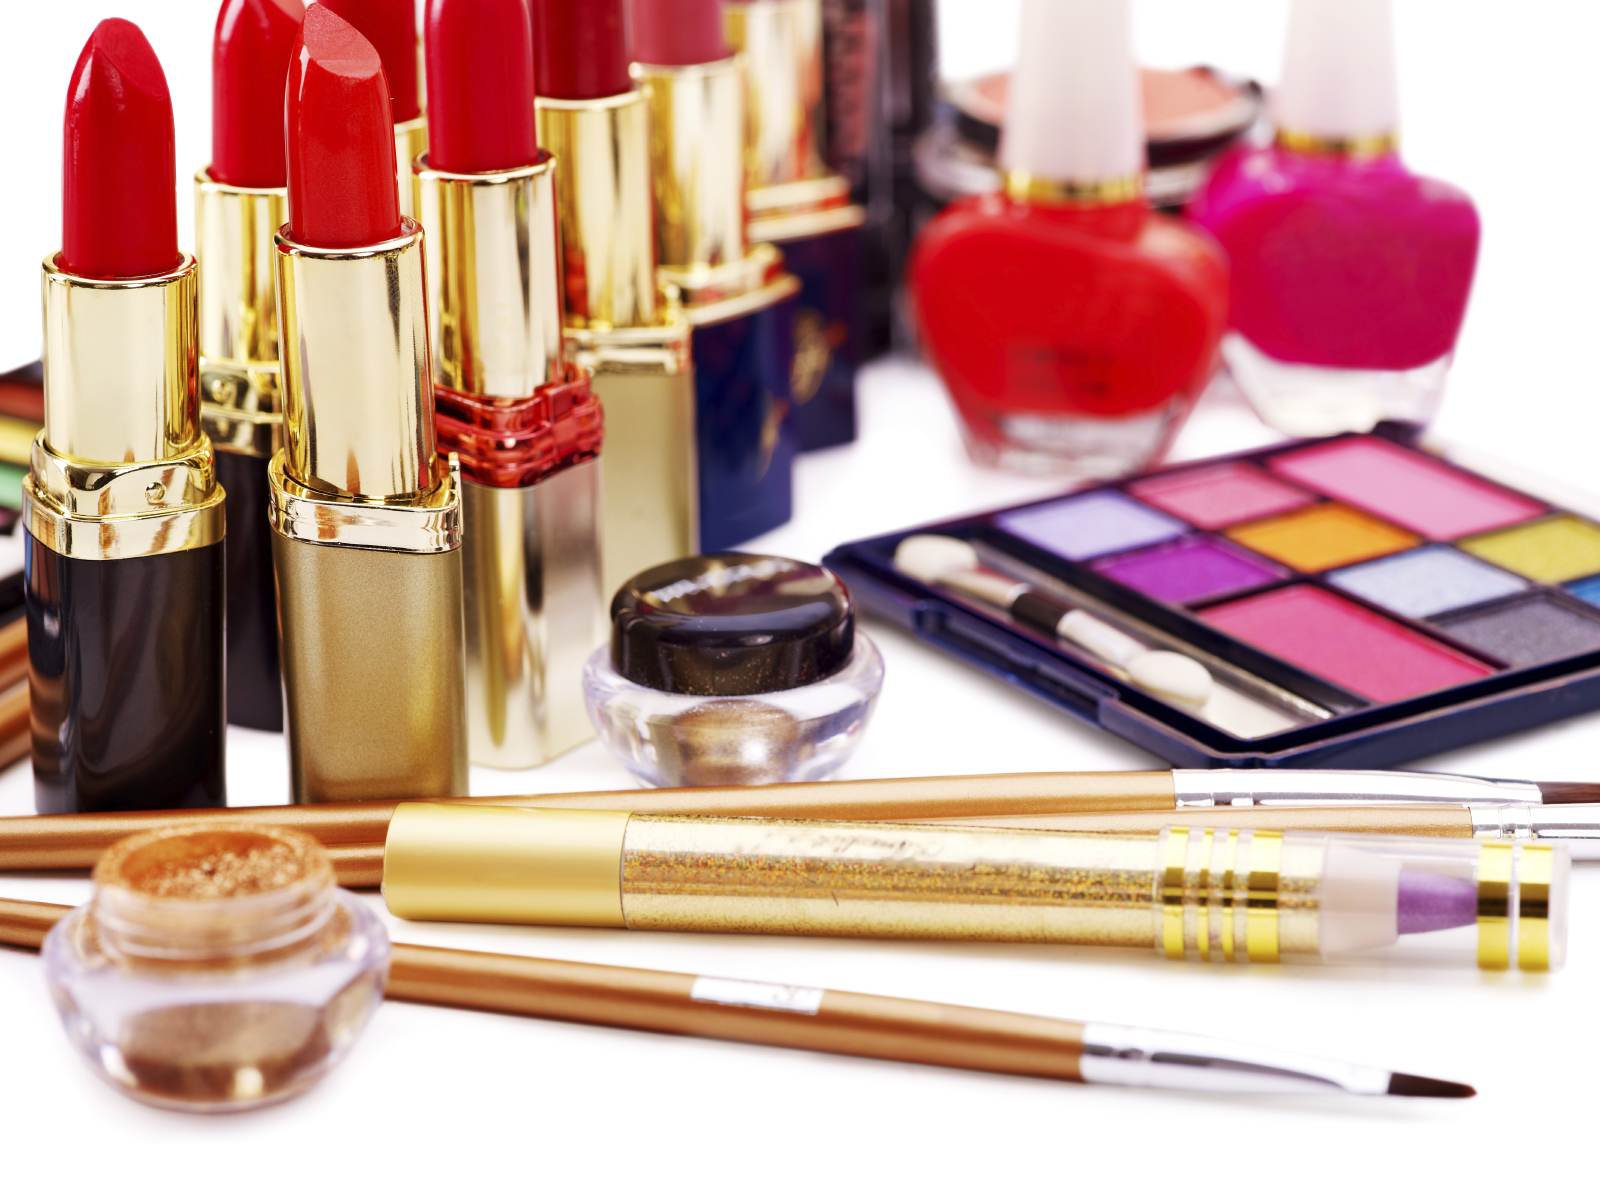 Halal makeup the latest in natural cosmetics brandsynario for Salon equipment and supplies